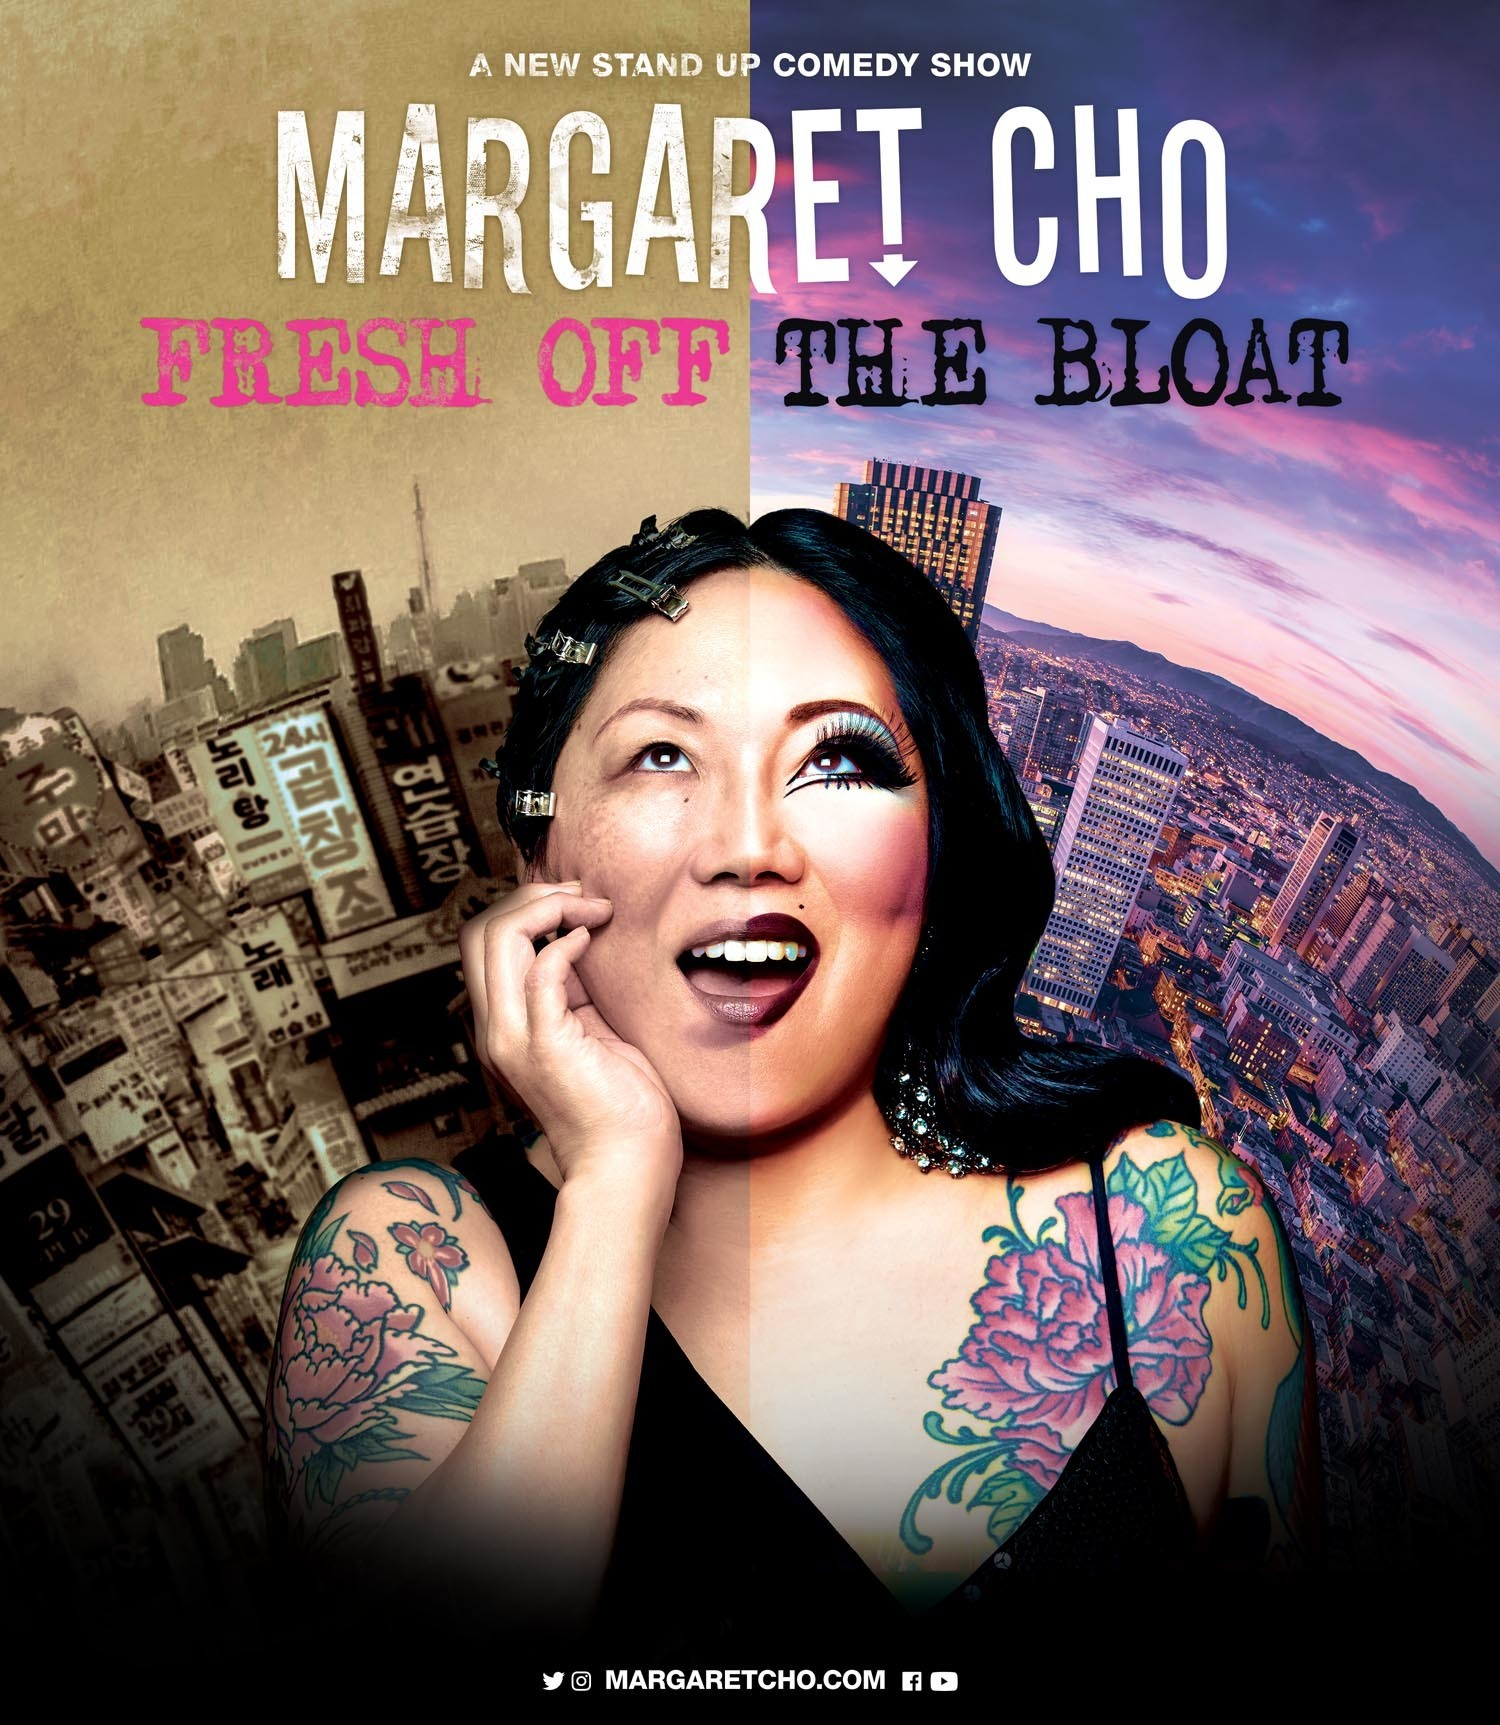 BWW Review: MARGARET CHO BARES ALL at Tampa Improv